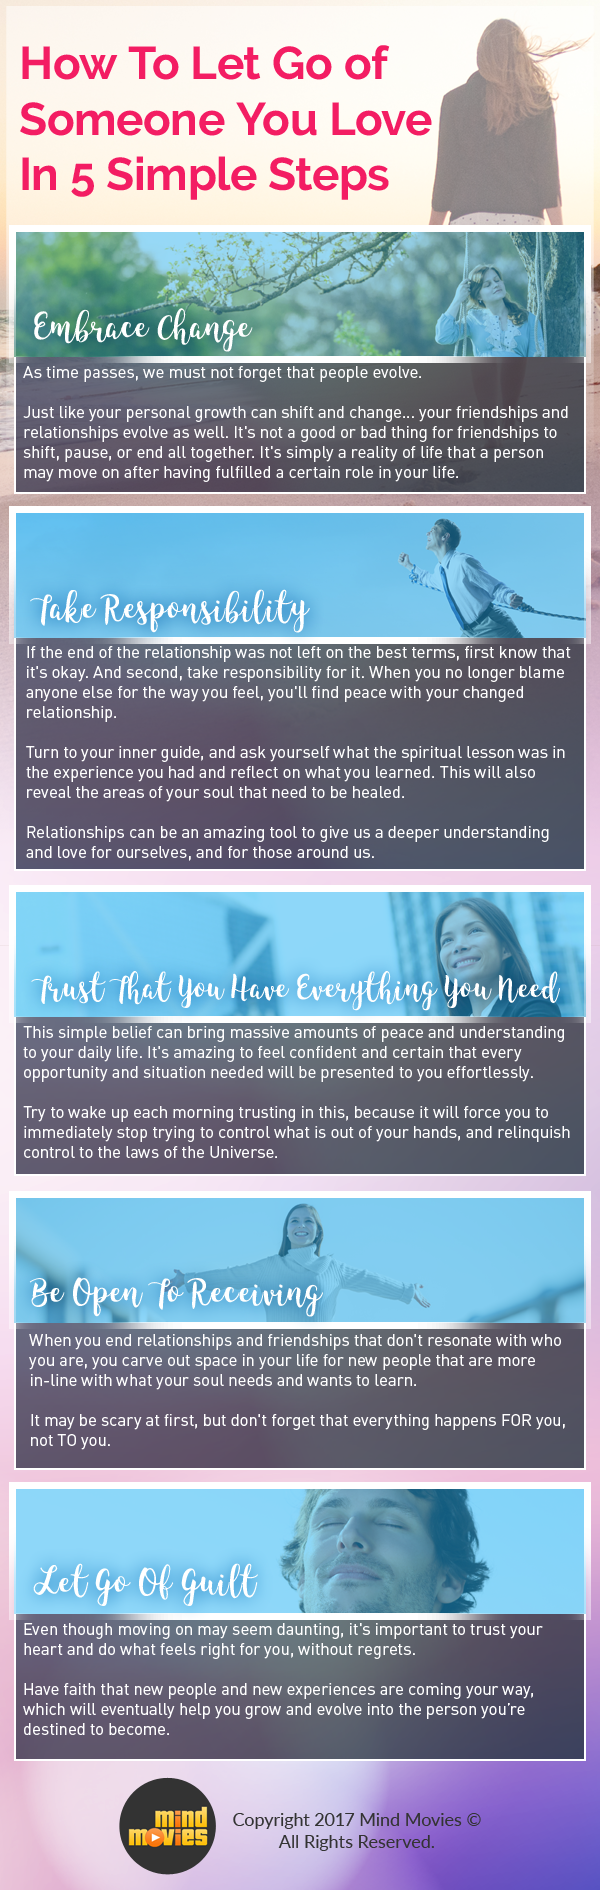 Turn on your images to read my infographic!